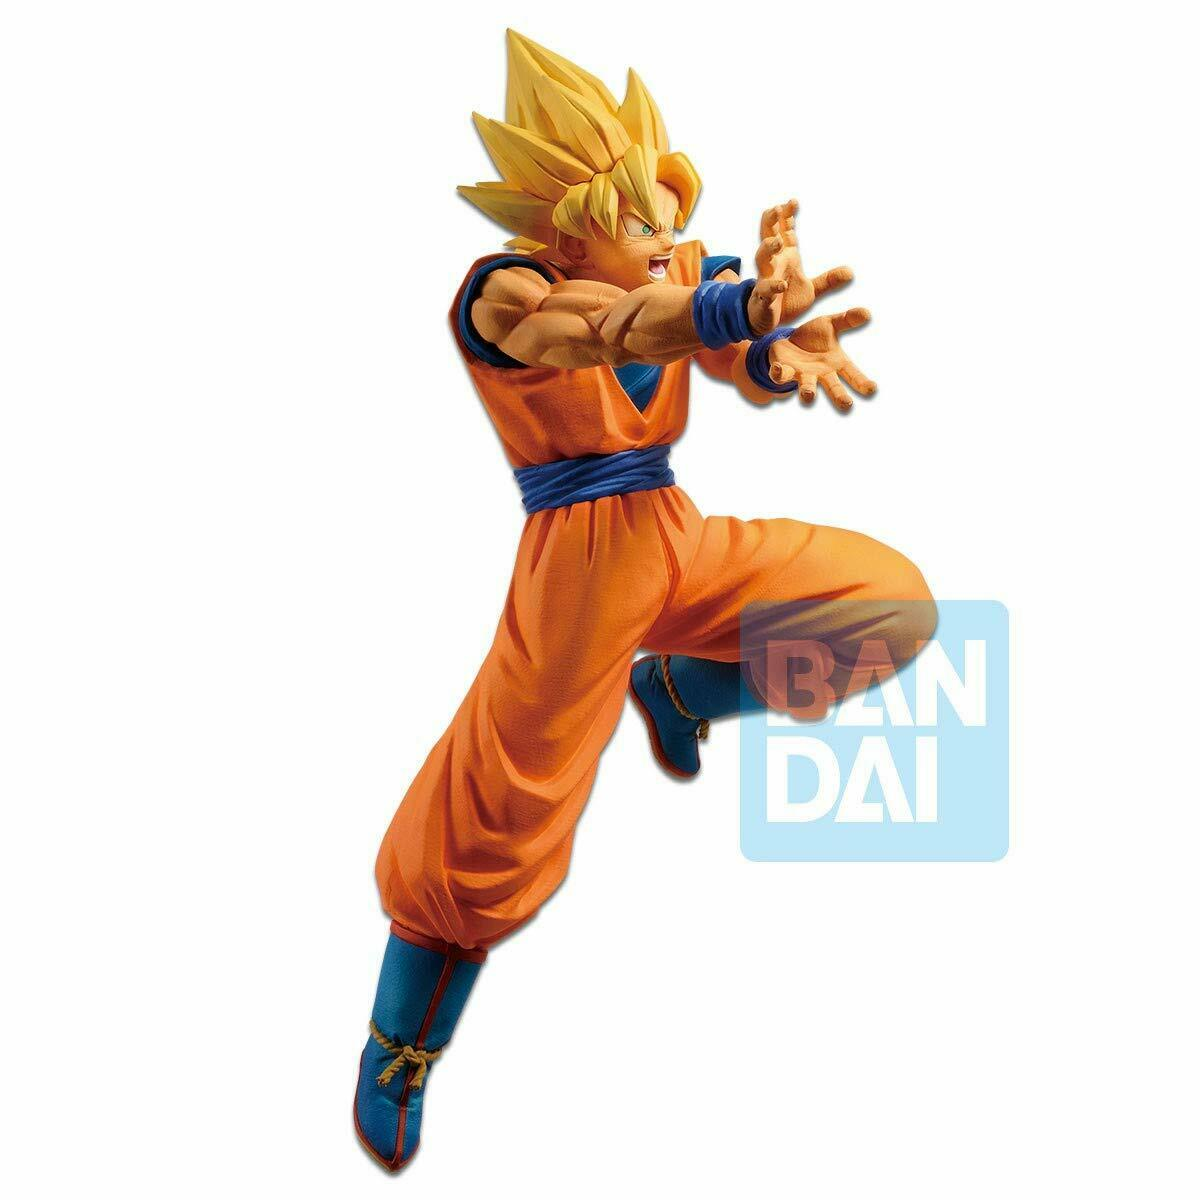 Estátua Super Saiyan Son Goku (The Android Battle): Dragon Ball Z - Bandai